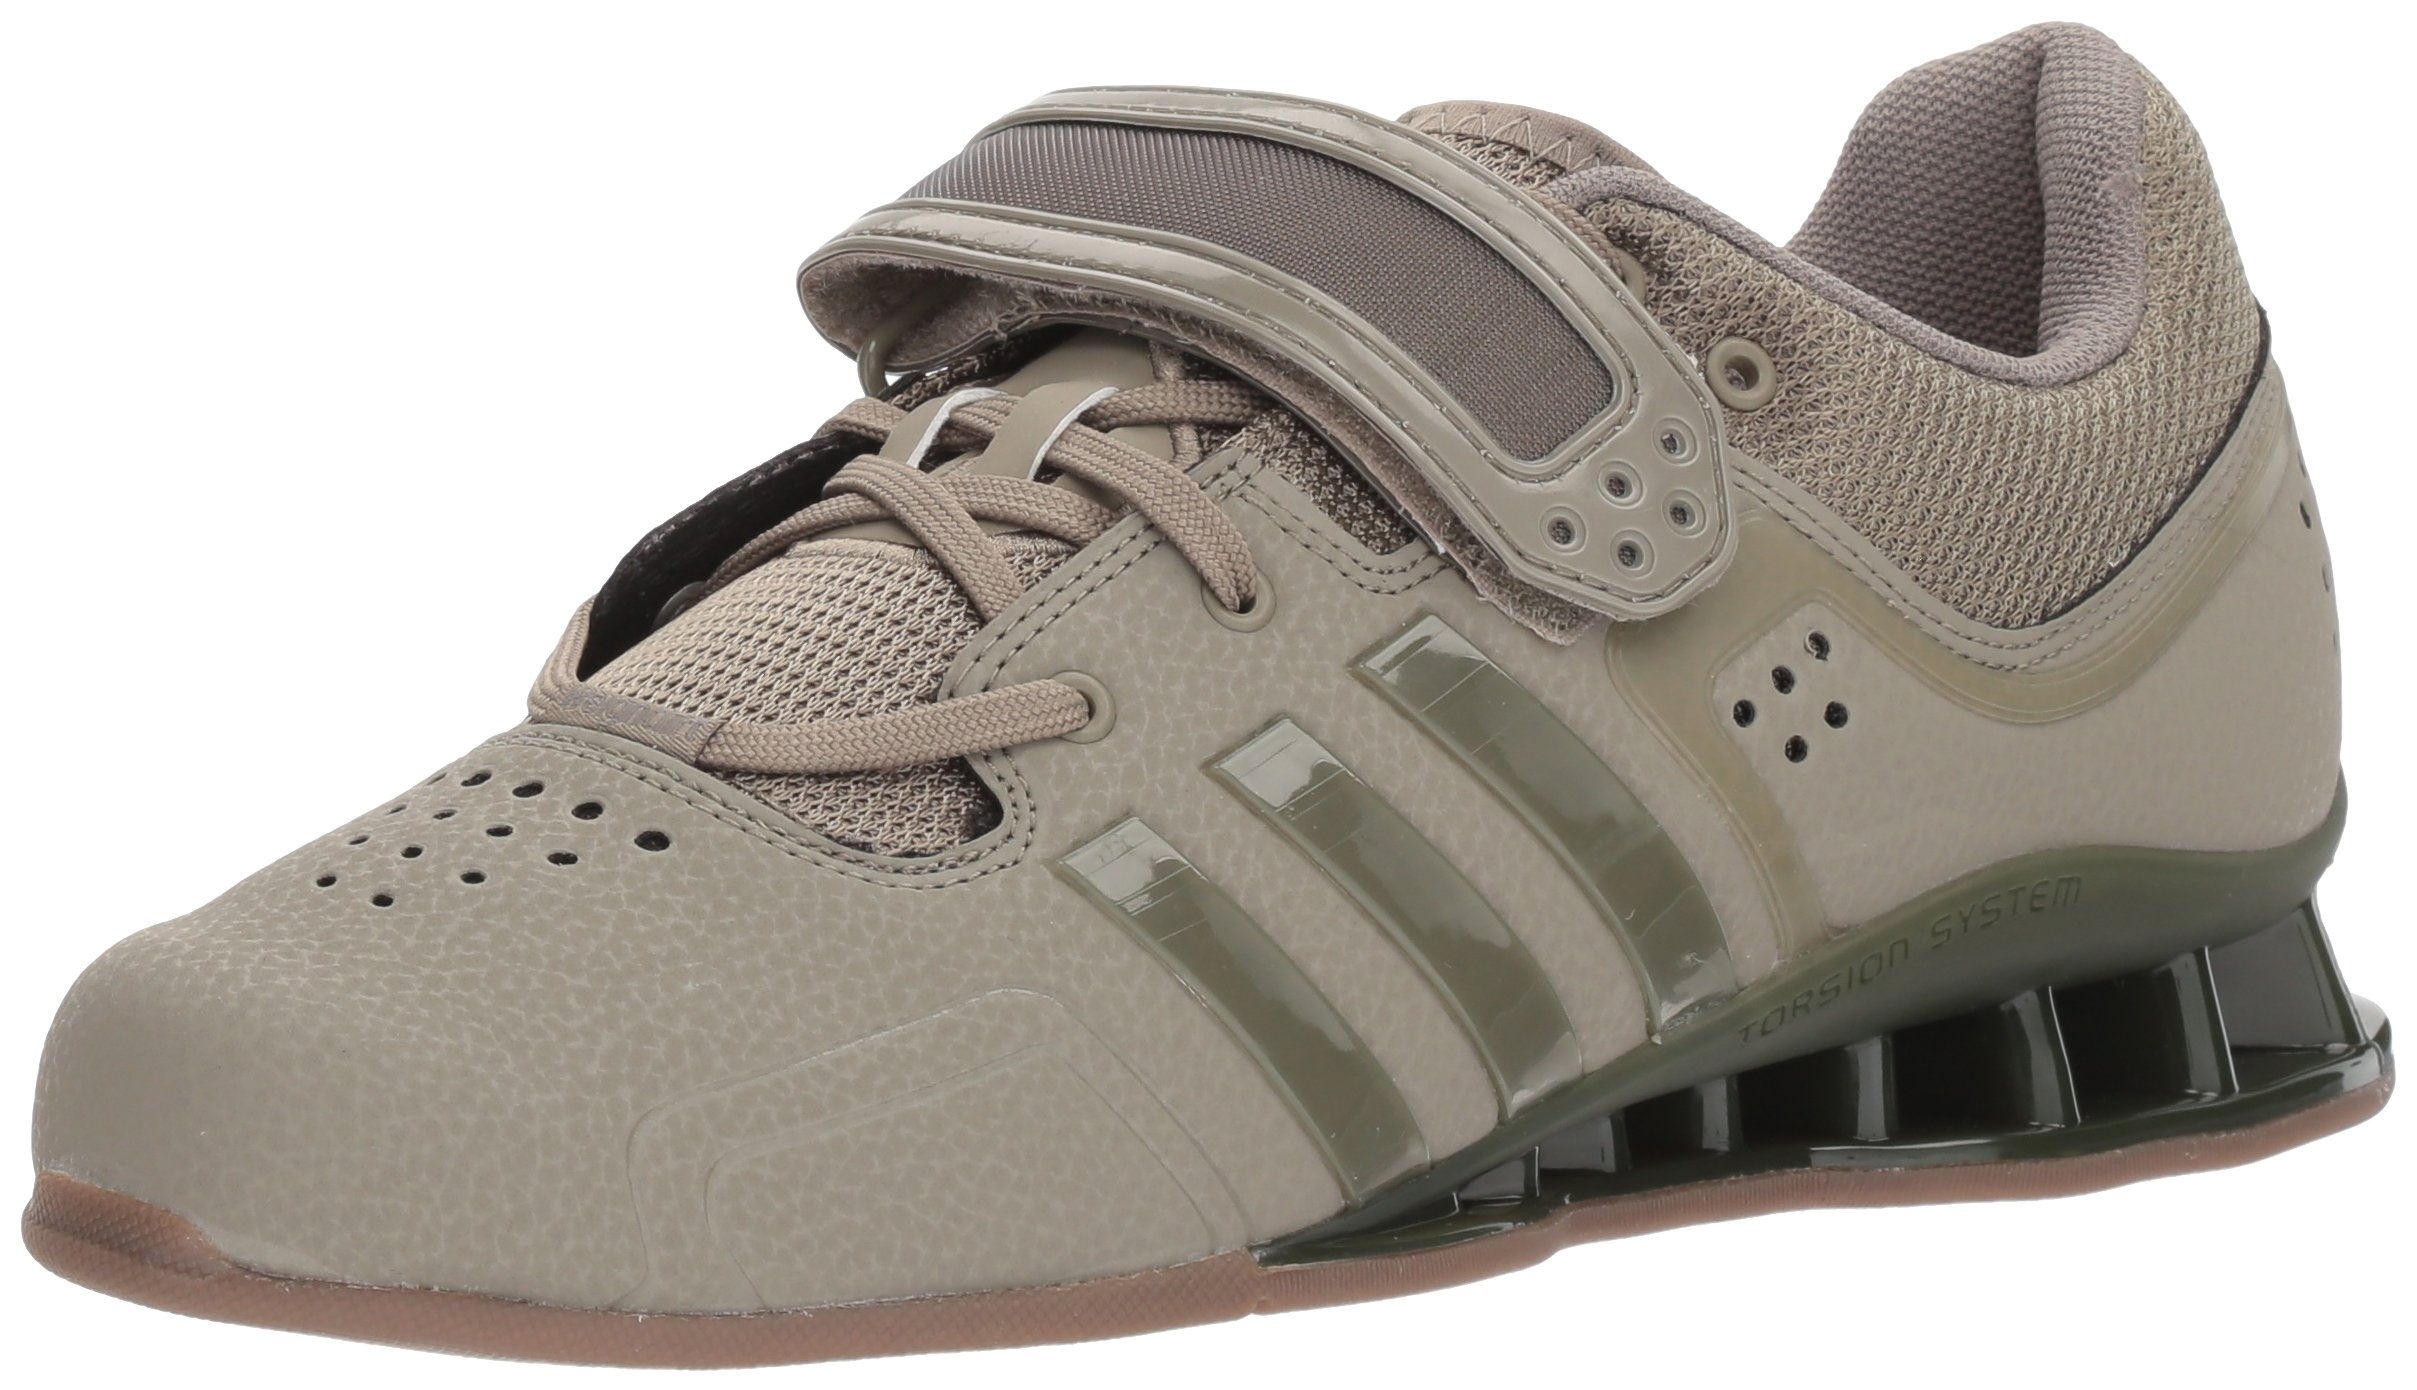 adidas Adipower Weightlift Cross Trainer Trace Cargo/Gum, 14.5 M US